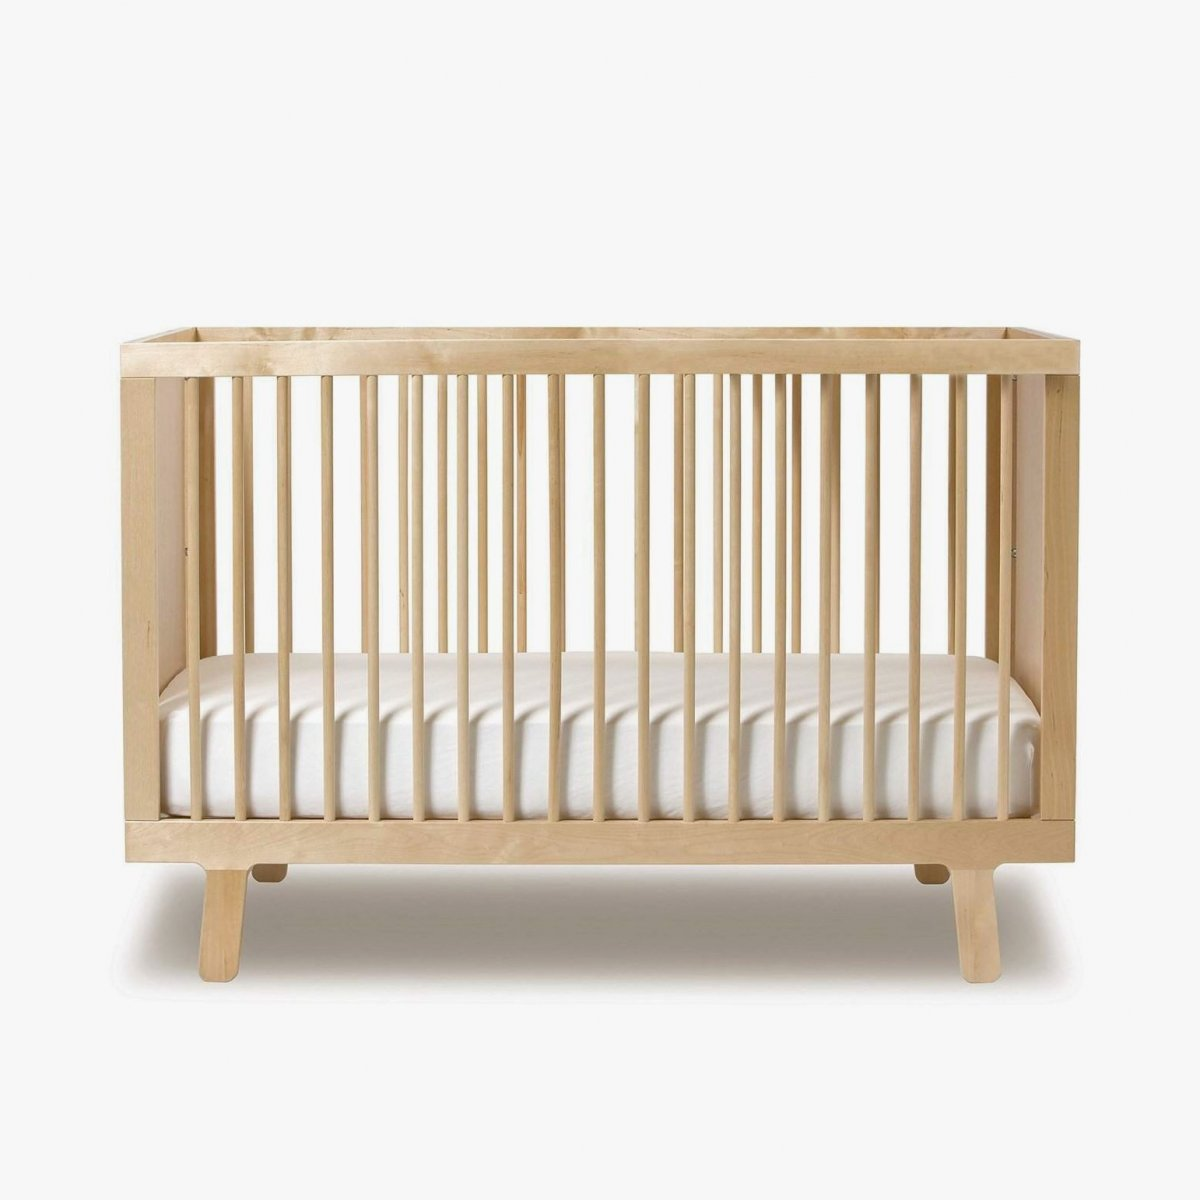 Sparrow Crib, birch.